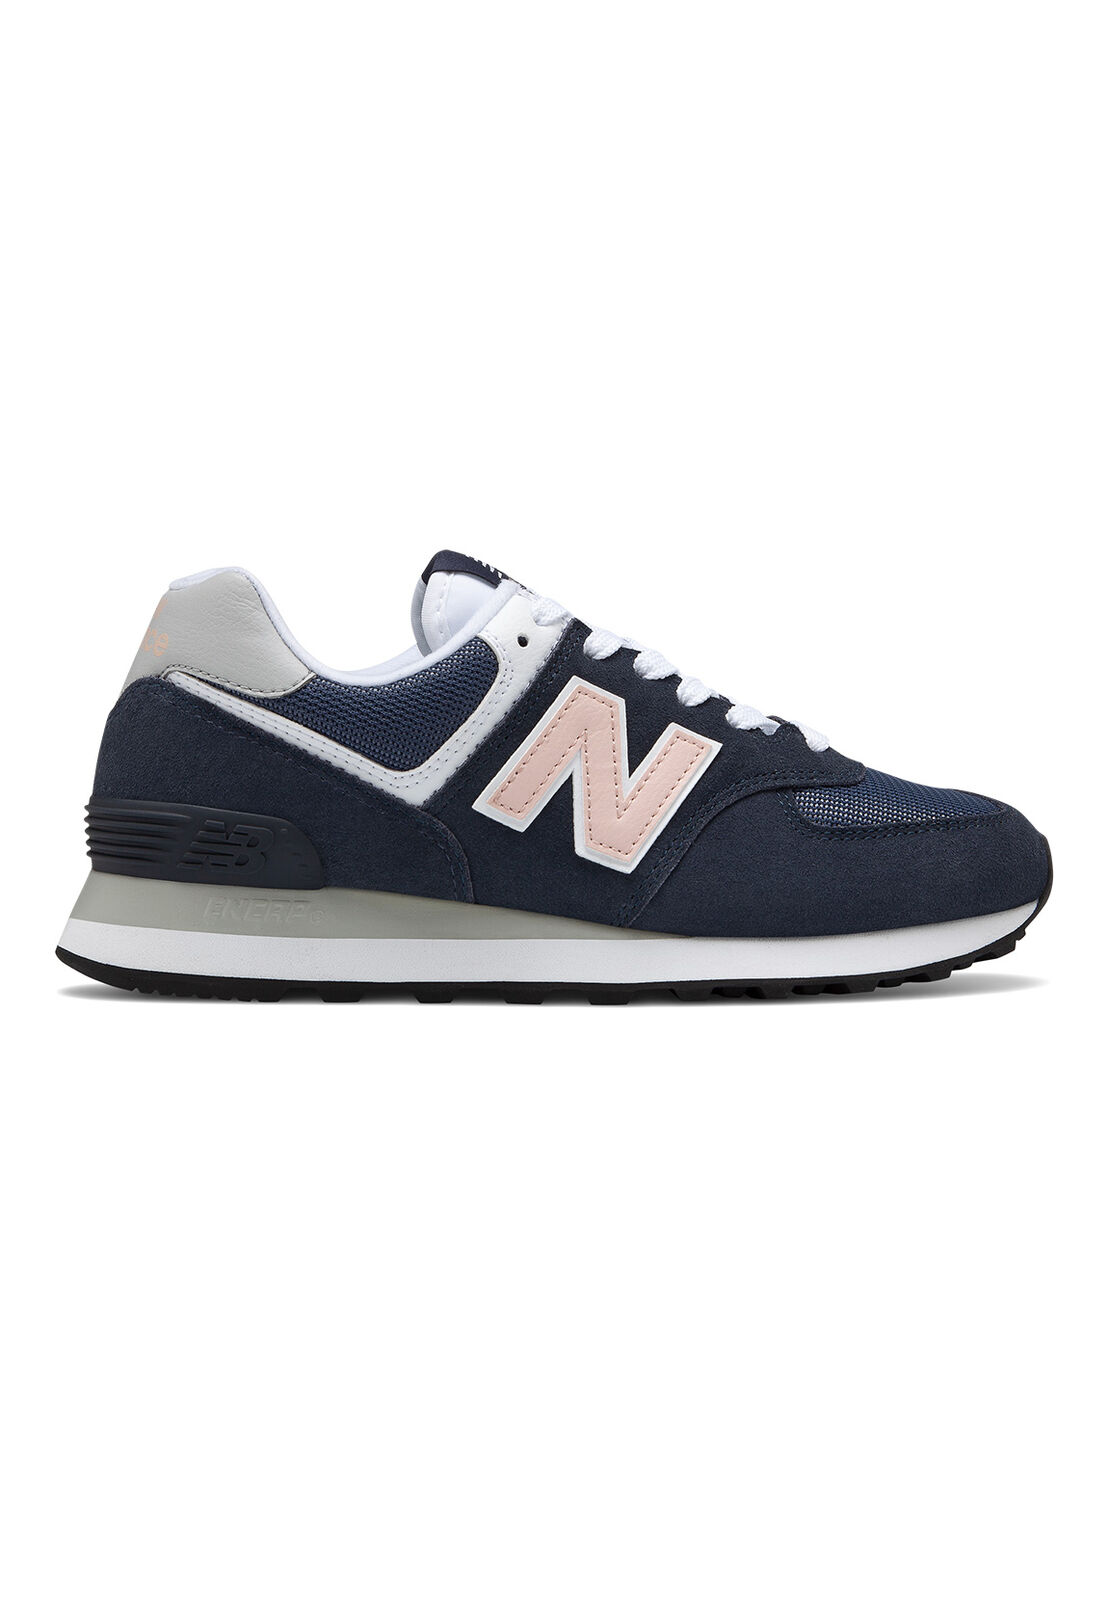 New Balance Sneaker Women's Wl574btc bluee Outer Space